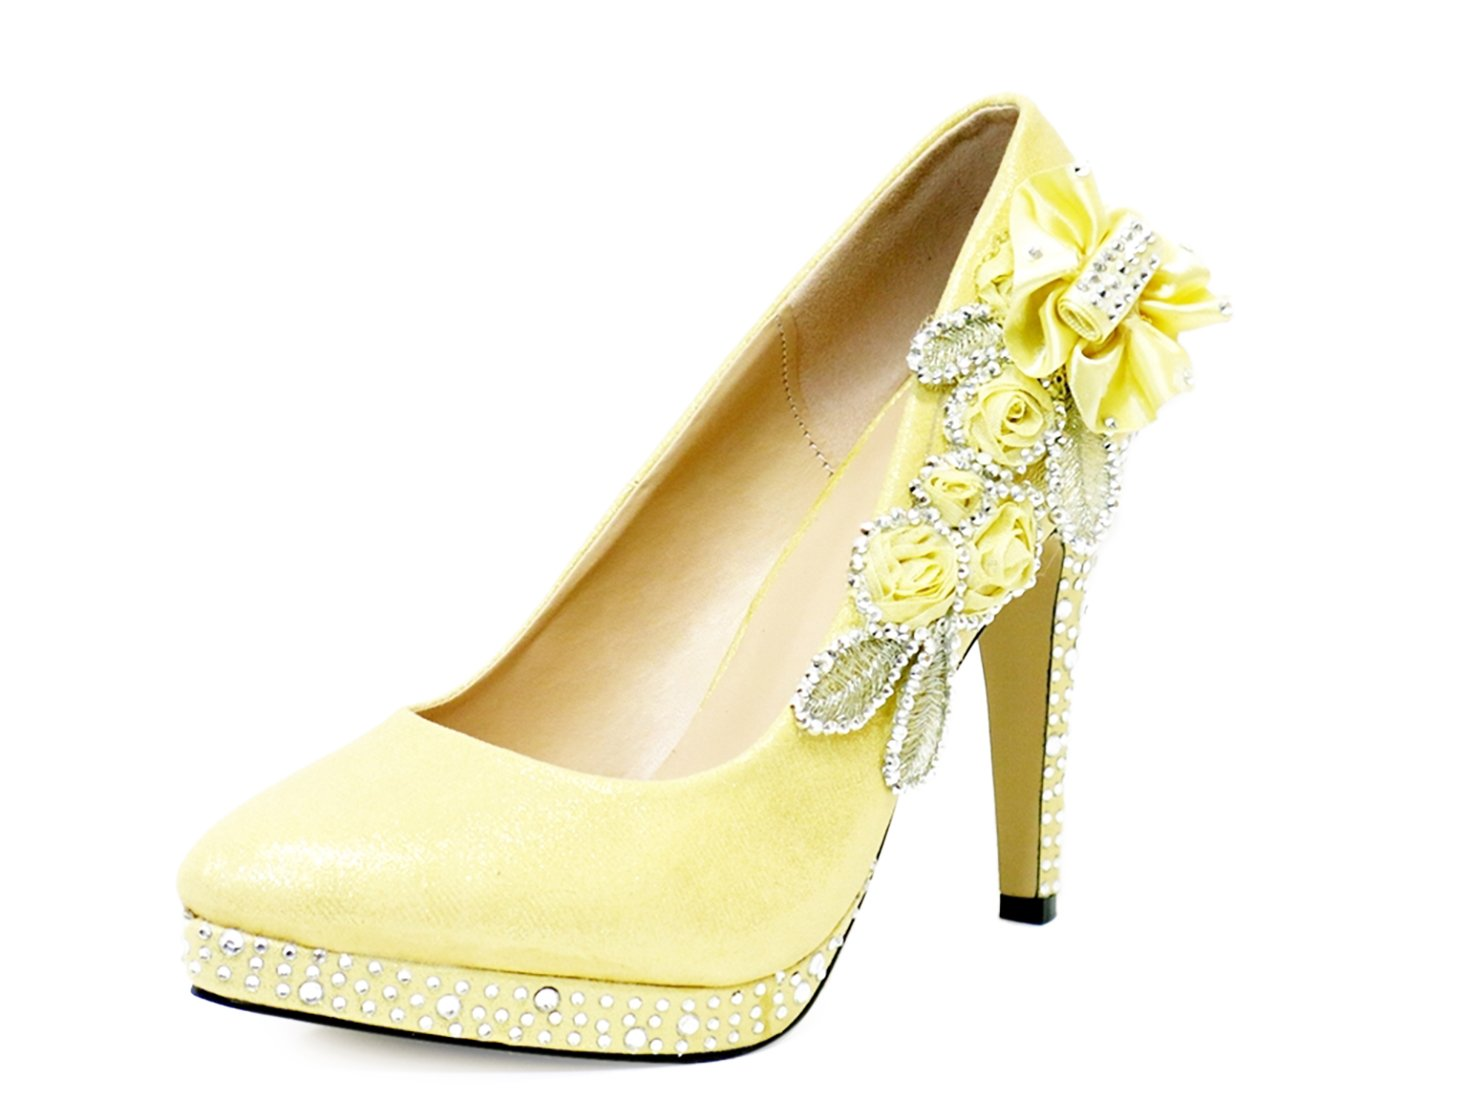 Ktc Women's Glitter Gorgeous Crystal Wedding High Heel Shoes: Amazon.co.uk:  Shoes & Bags